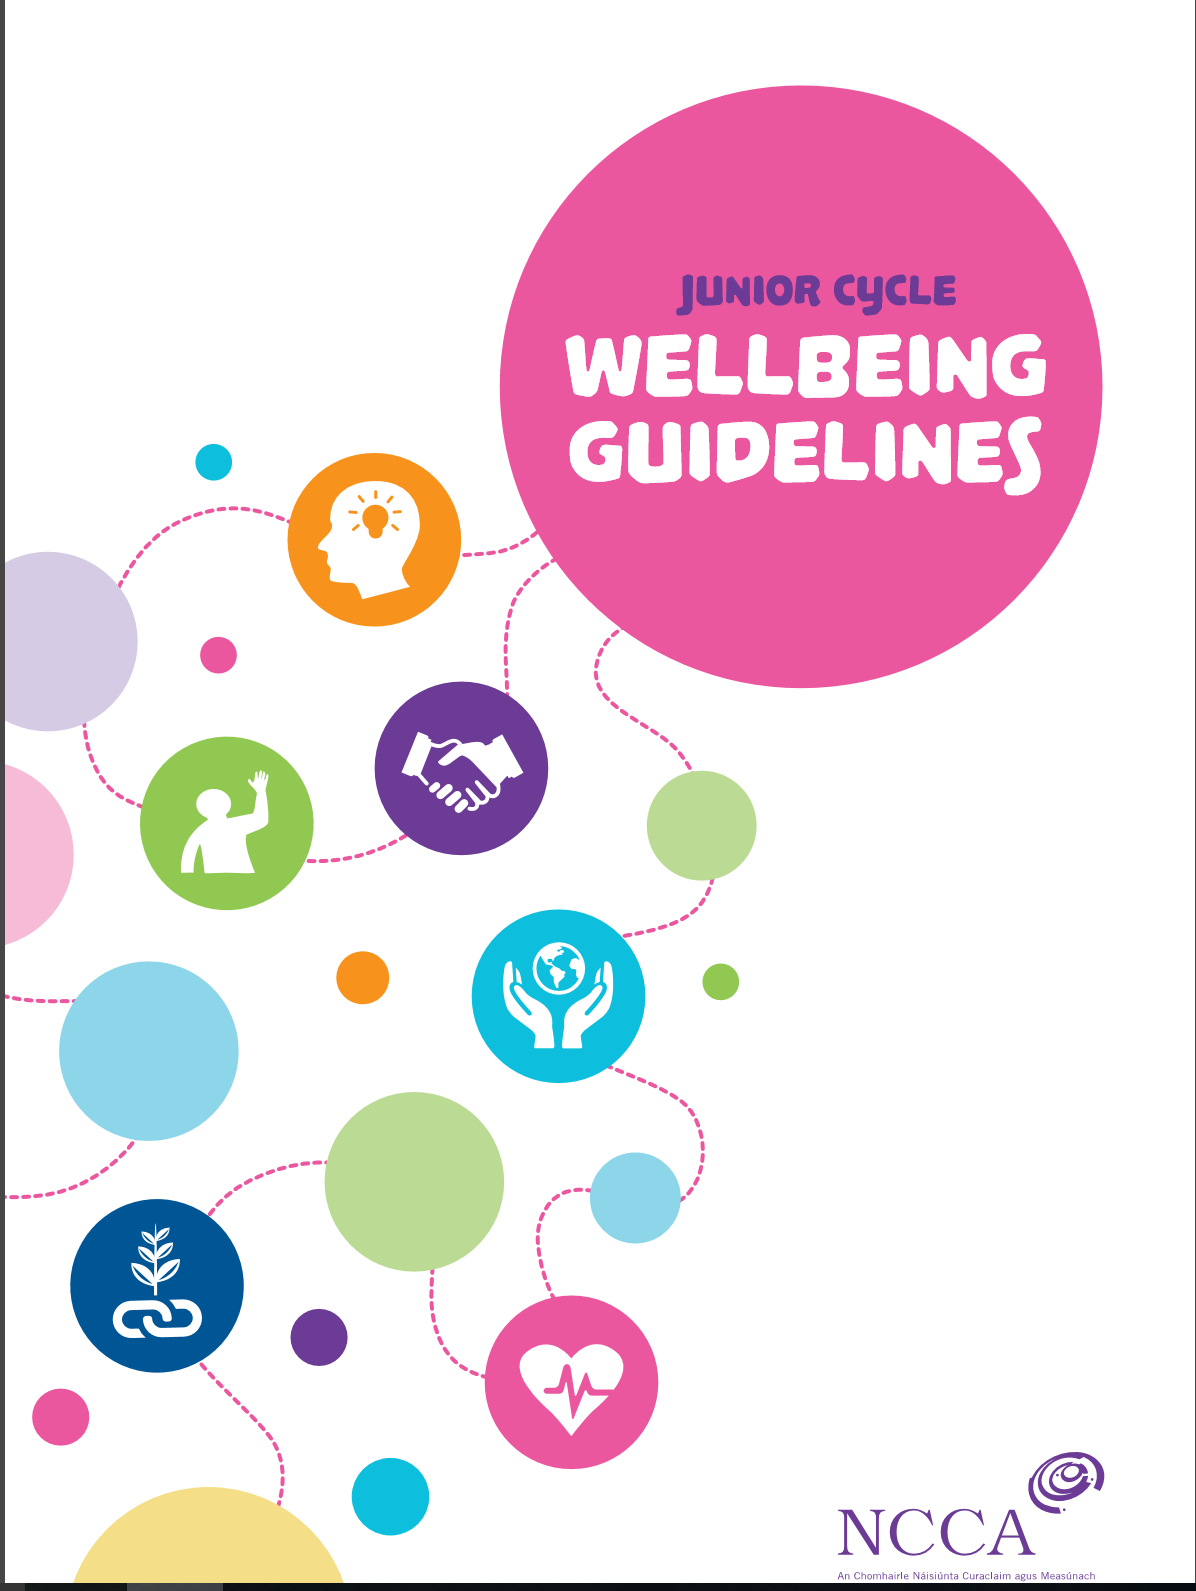 Wellbeing Guidelines for Junior Cycle